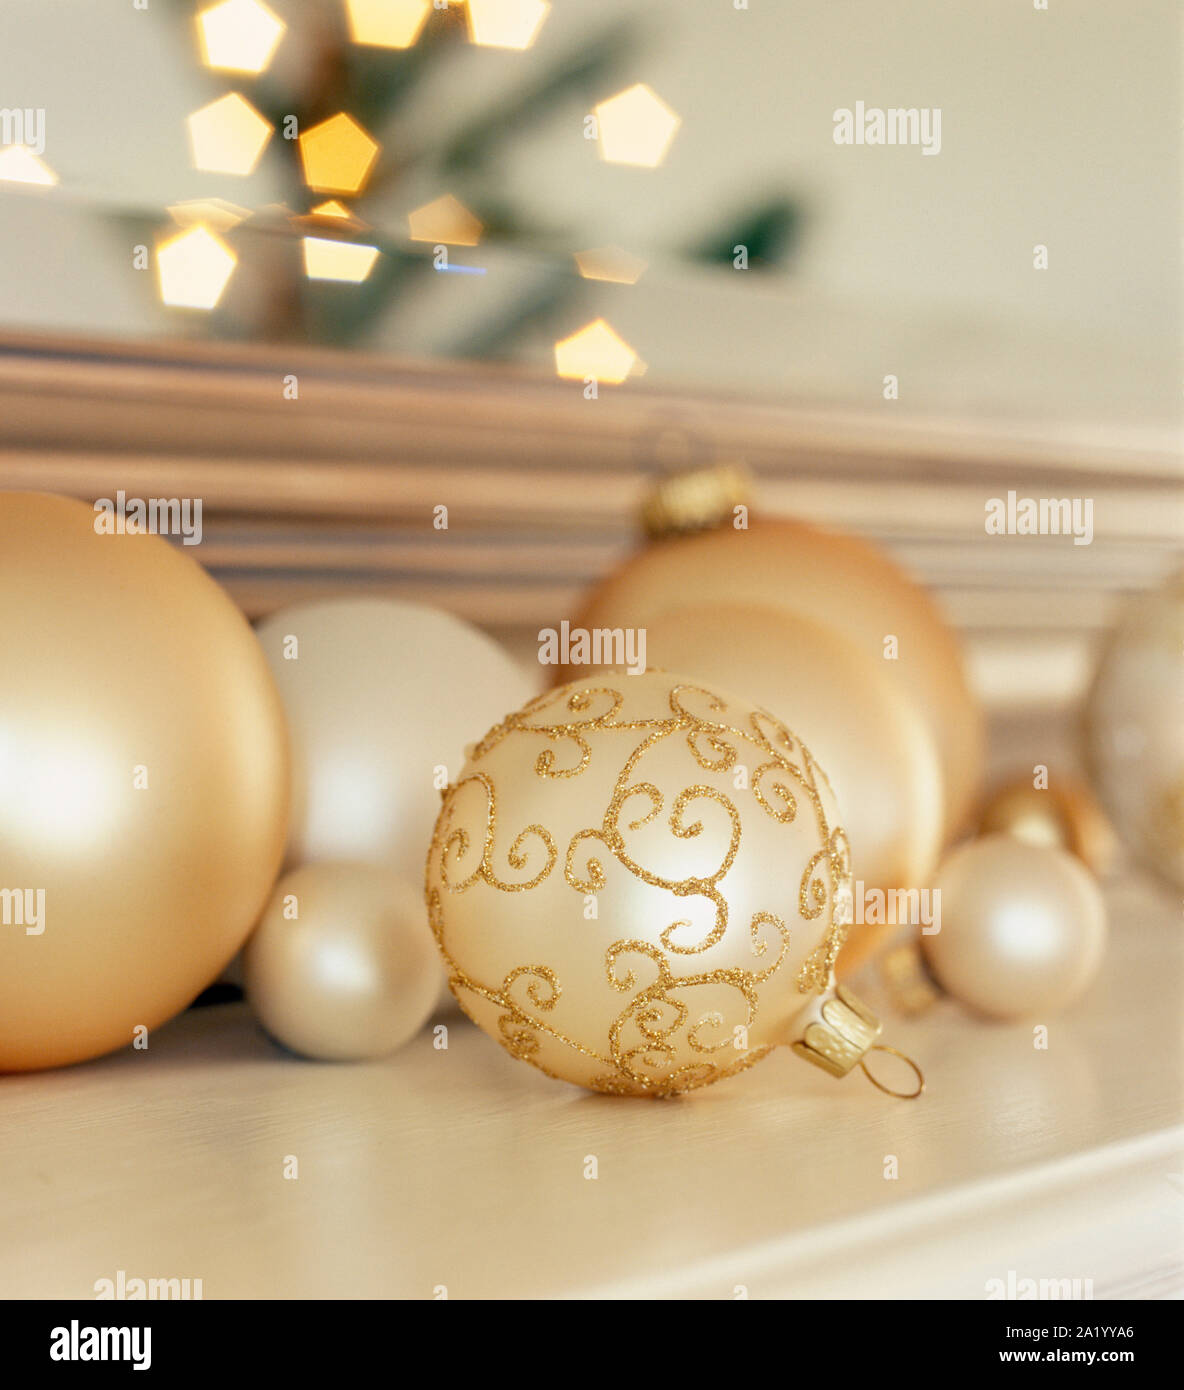 Silver And Gold Baubles Ornaments On Living Room Mantel With Reflection Of Lighted Christmas Tree In Background Elegant Holiday Home Interior Decor Stock Photo Alamy